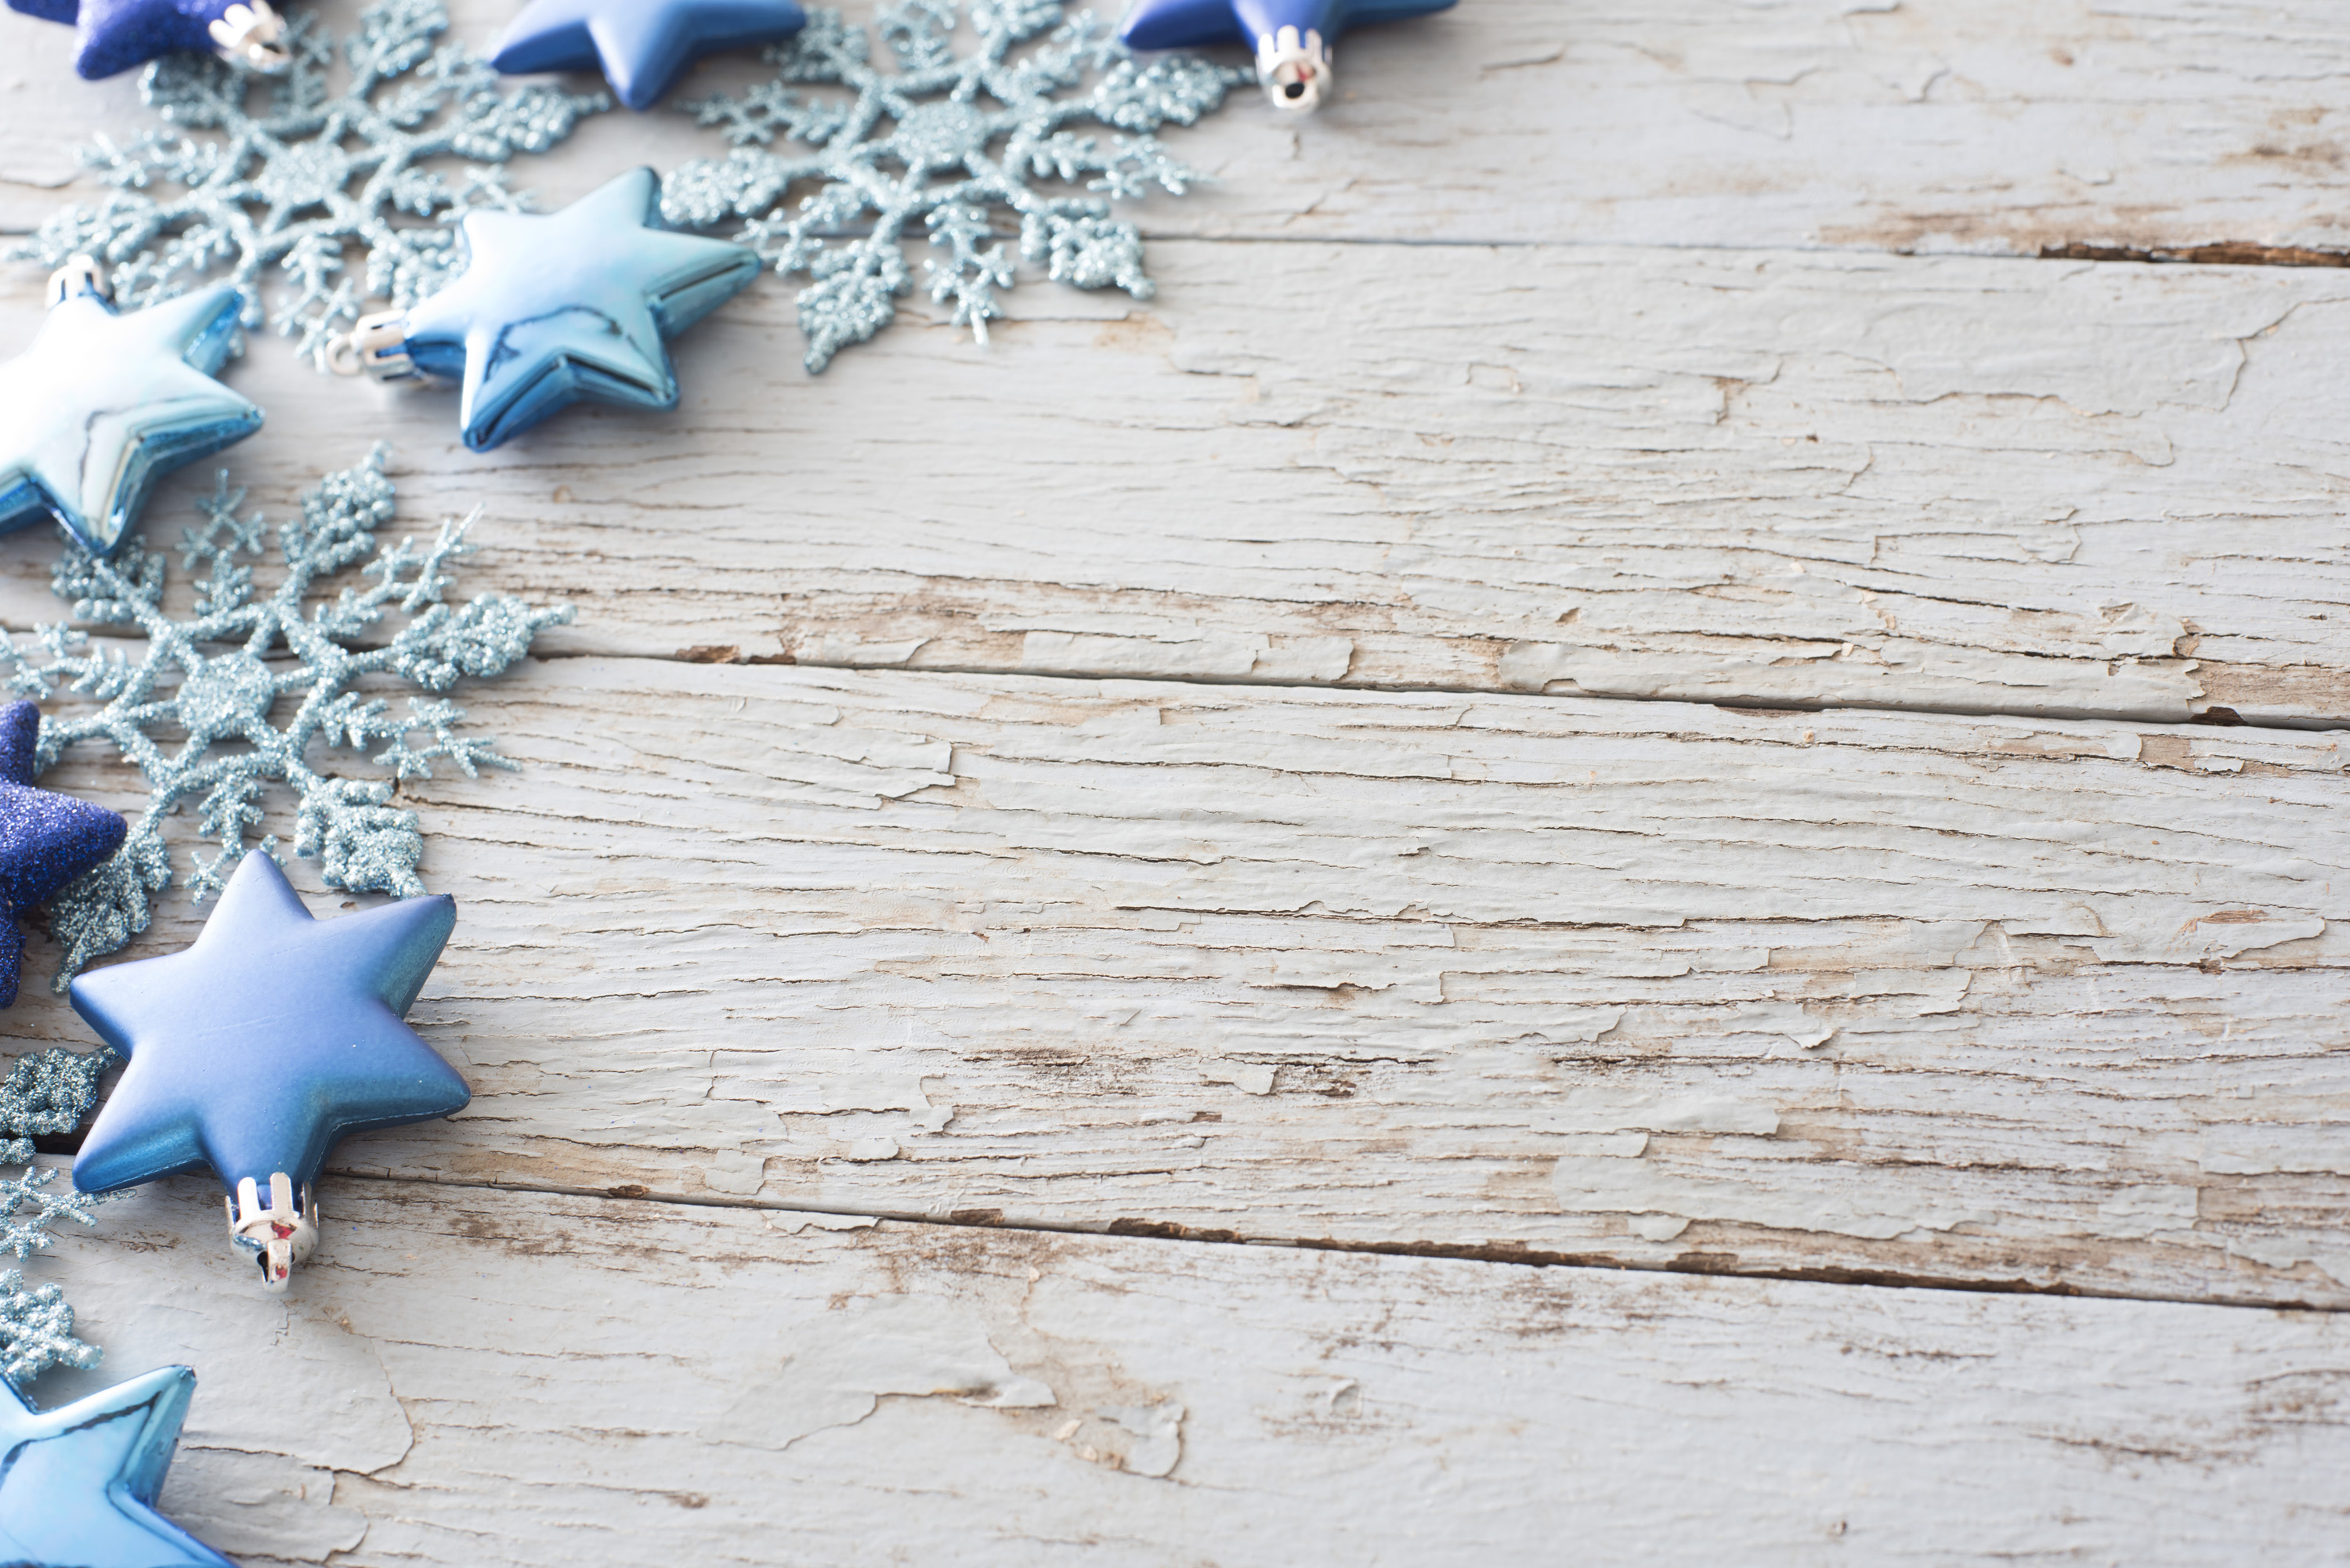 Rustic Christmas corner decoration on wood with scattered blue stars and glitter snowflakes and copy space for your holiday greeting